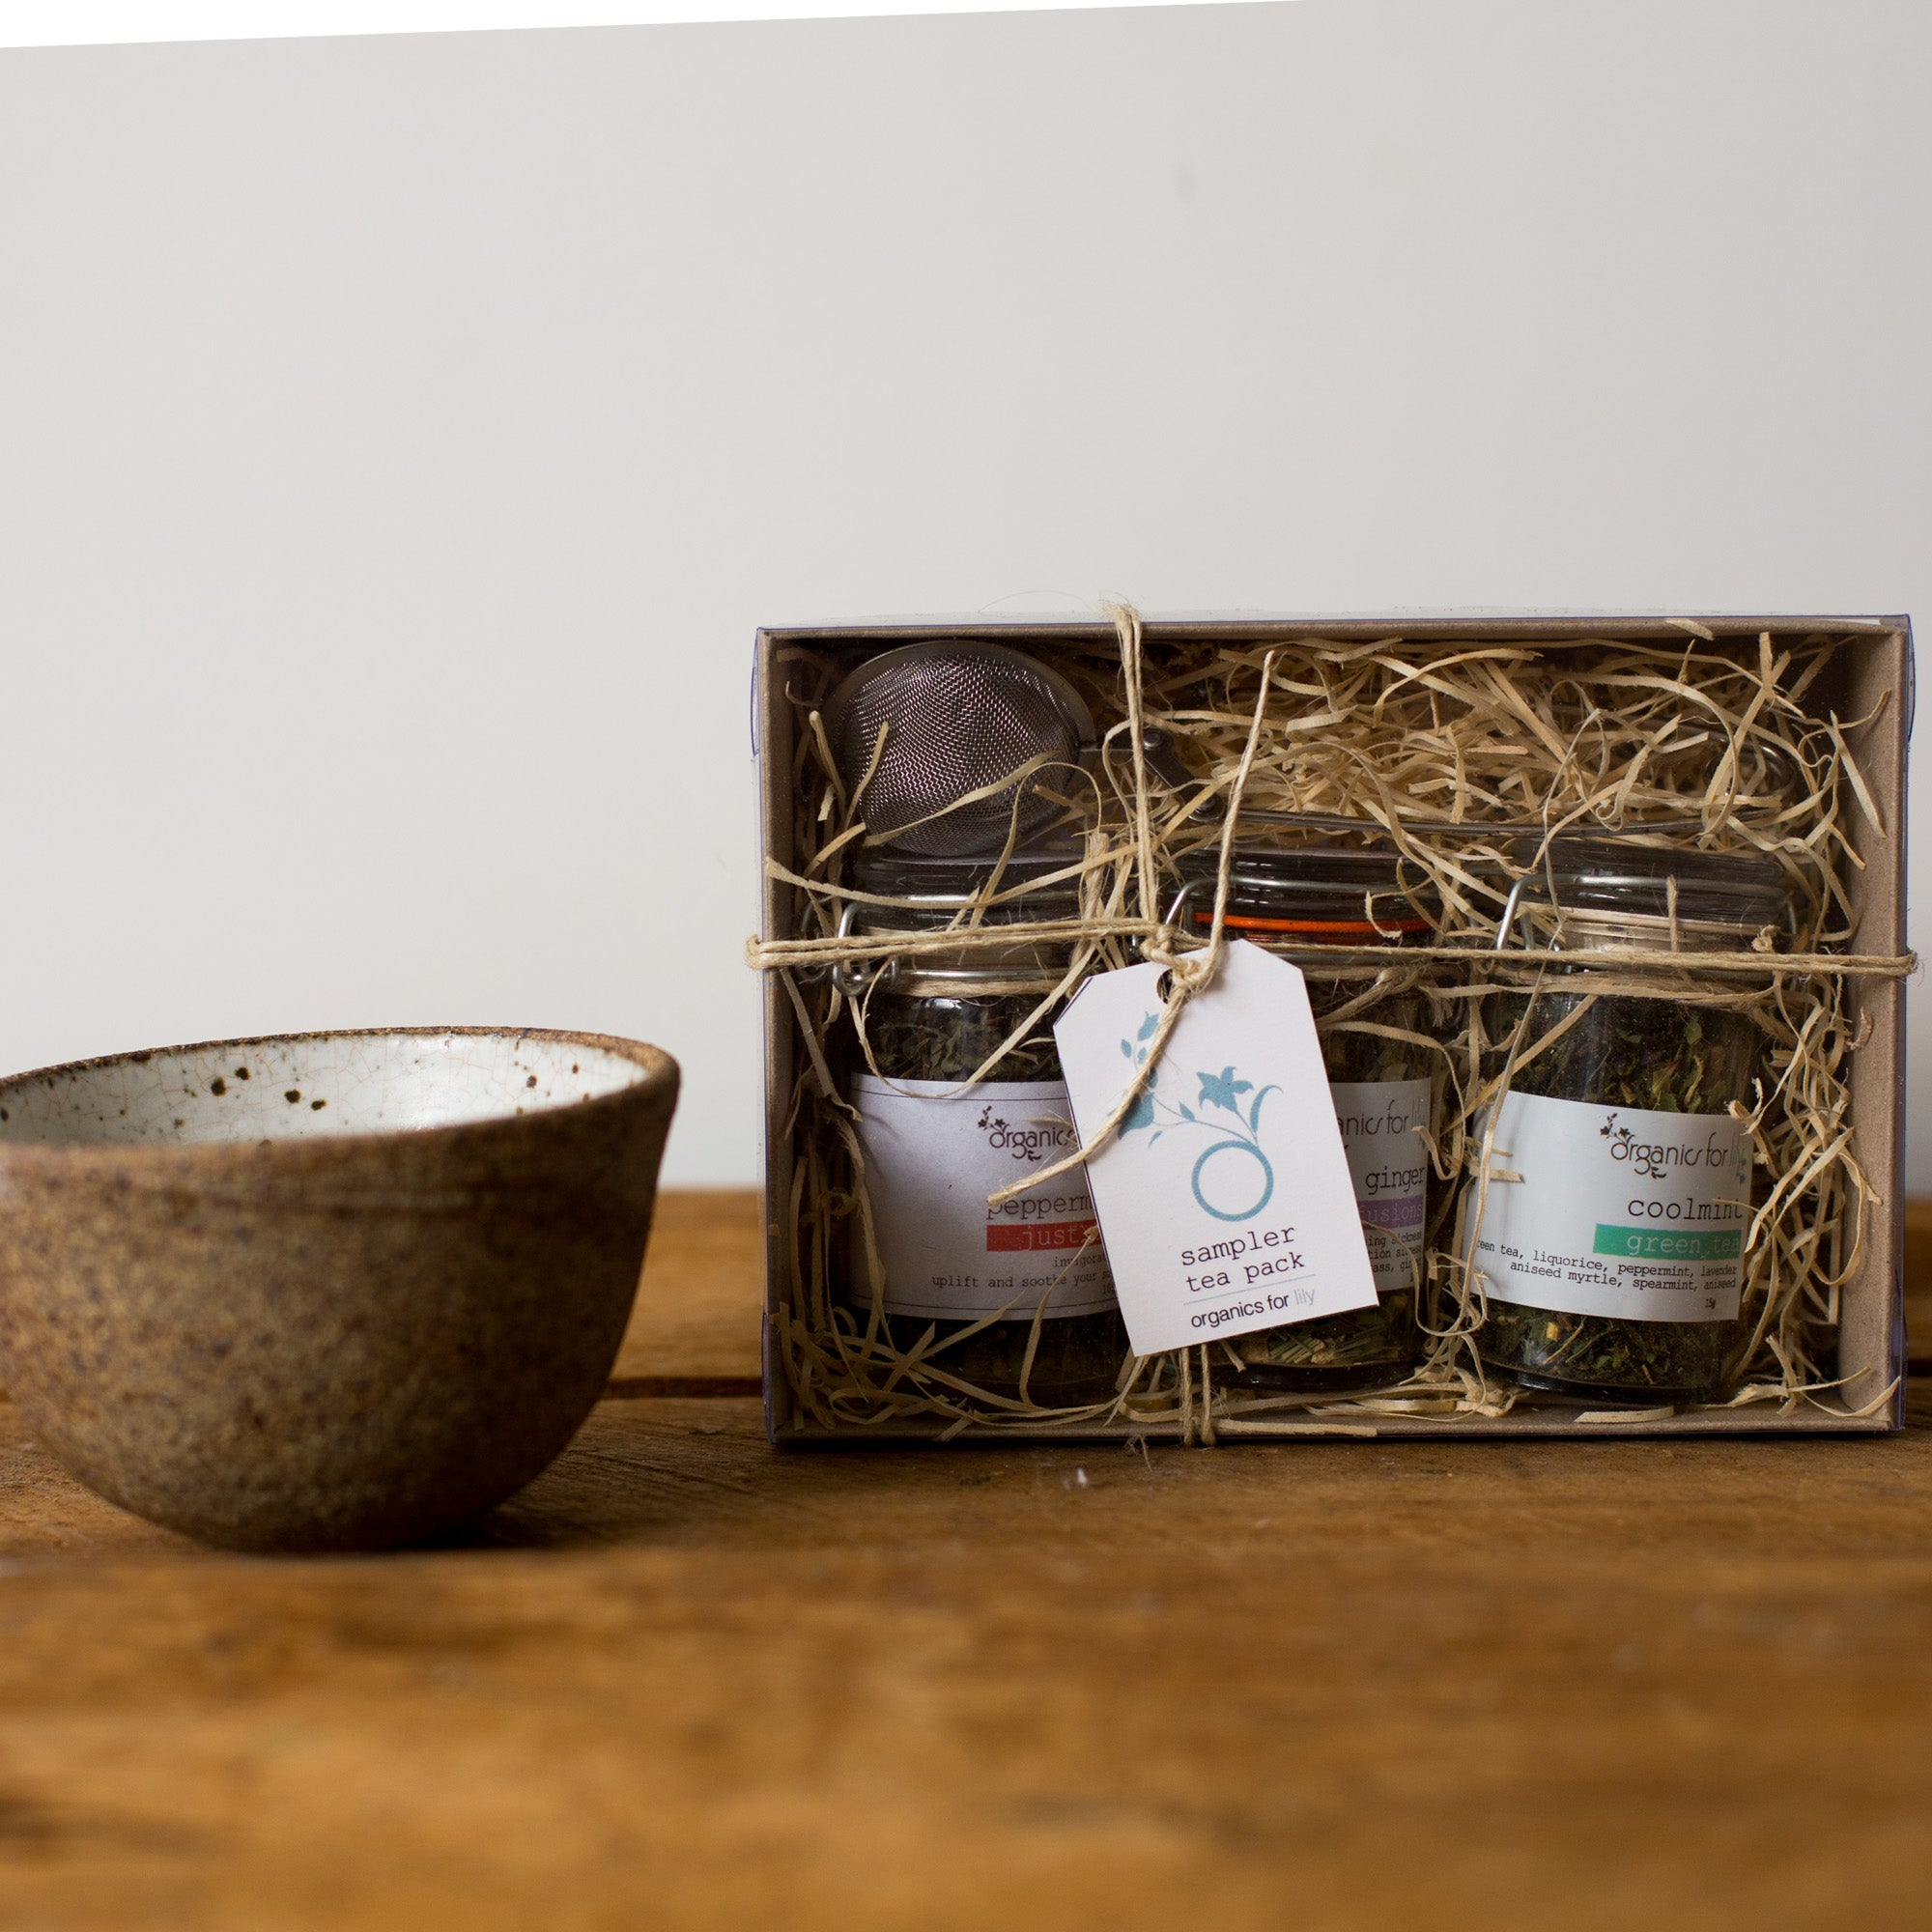 Organics for Lily - Tea Box Gift Set - last minute gift idea - melbourne